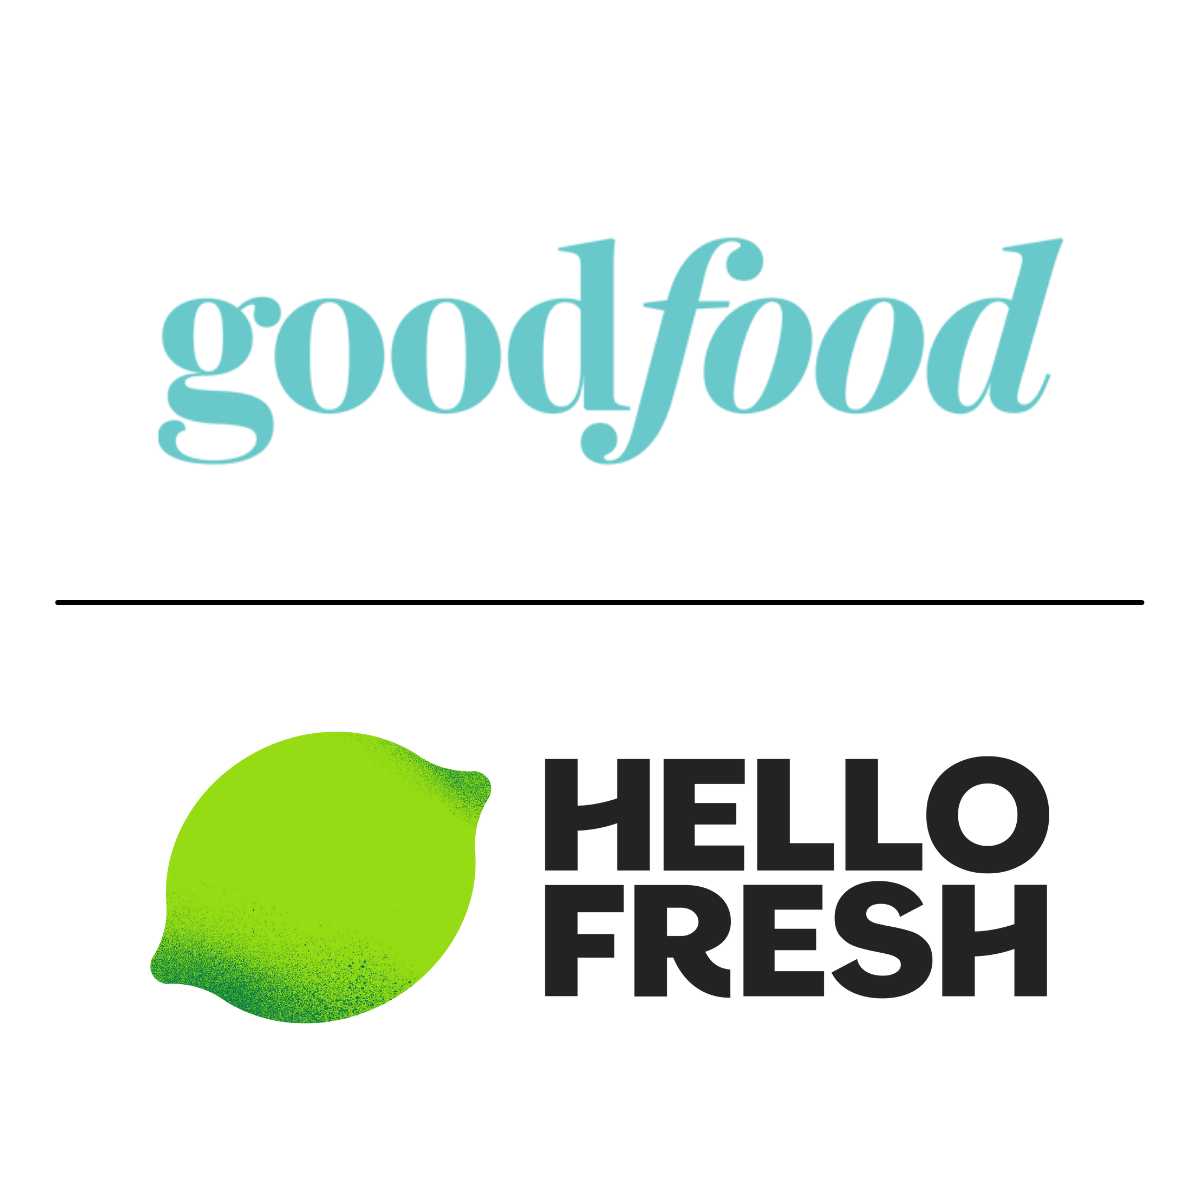 Hello Fresh Vs Good Food: Are They Worth Your Money?